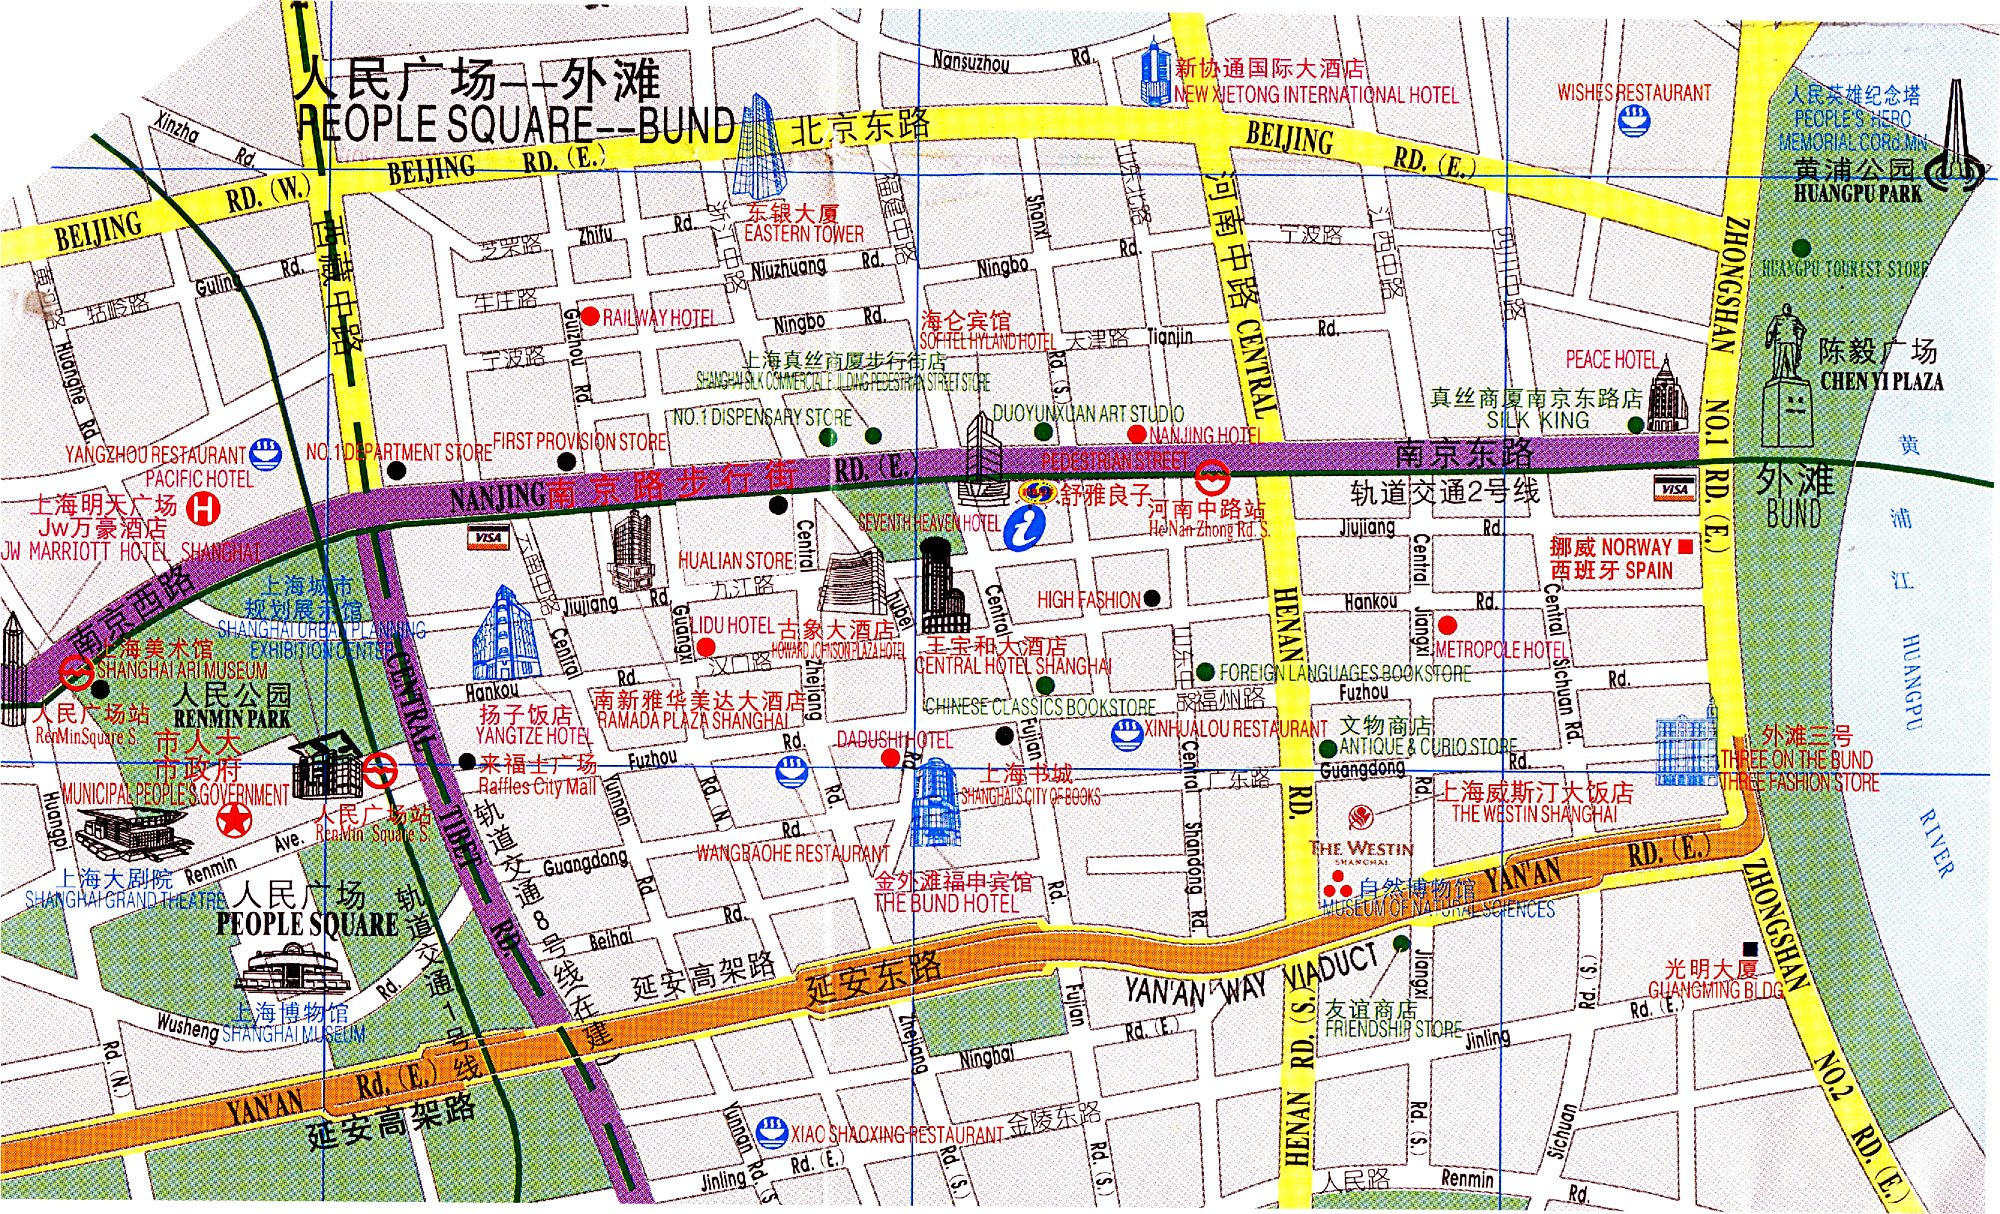 Area Map Between People's Square to The Bund